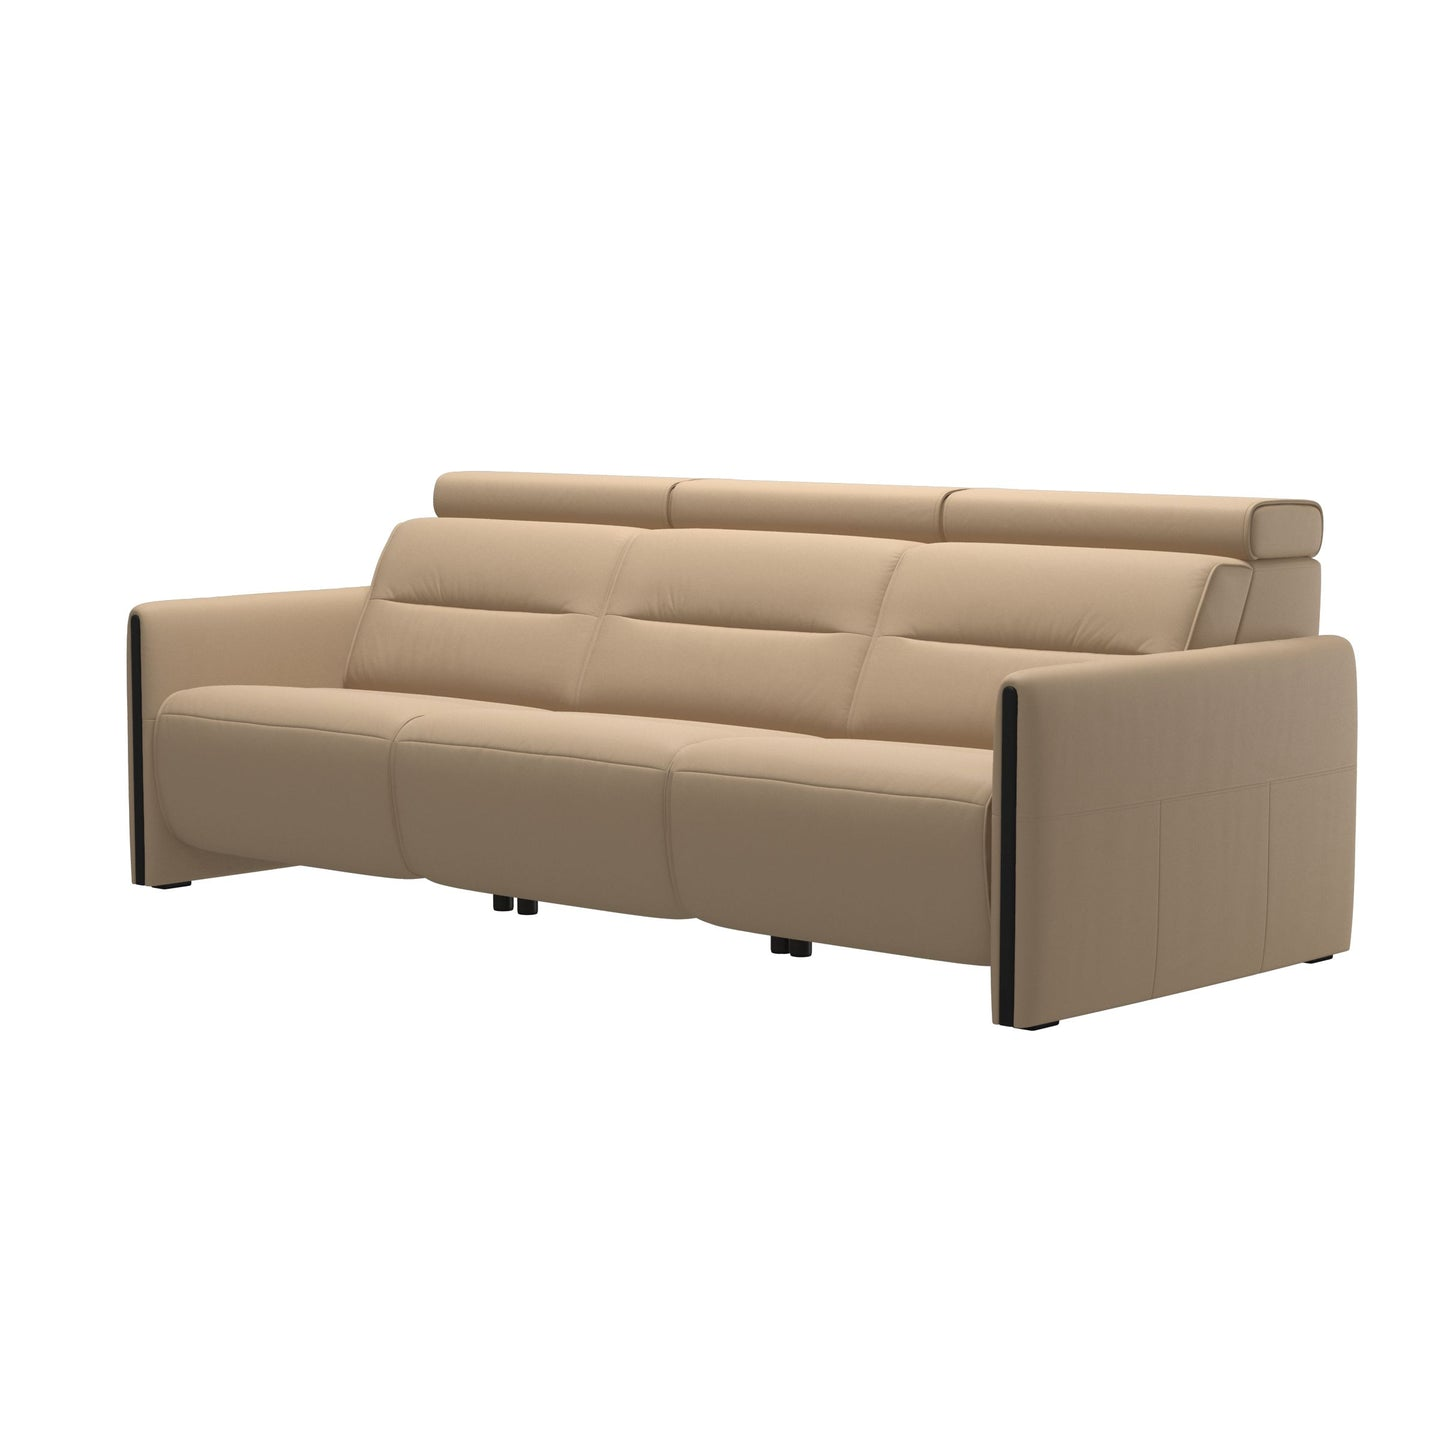 Stressless® Emily arm wood 3 seater